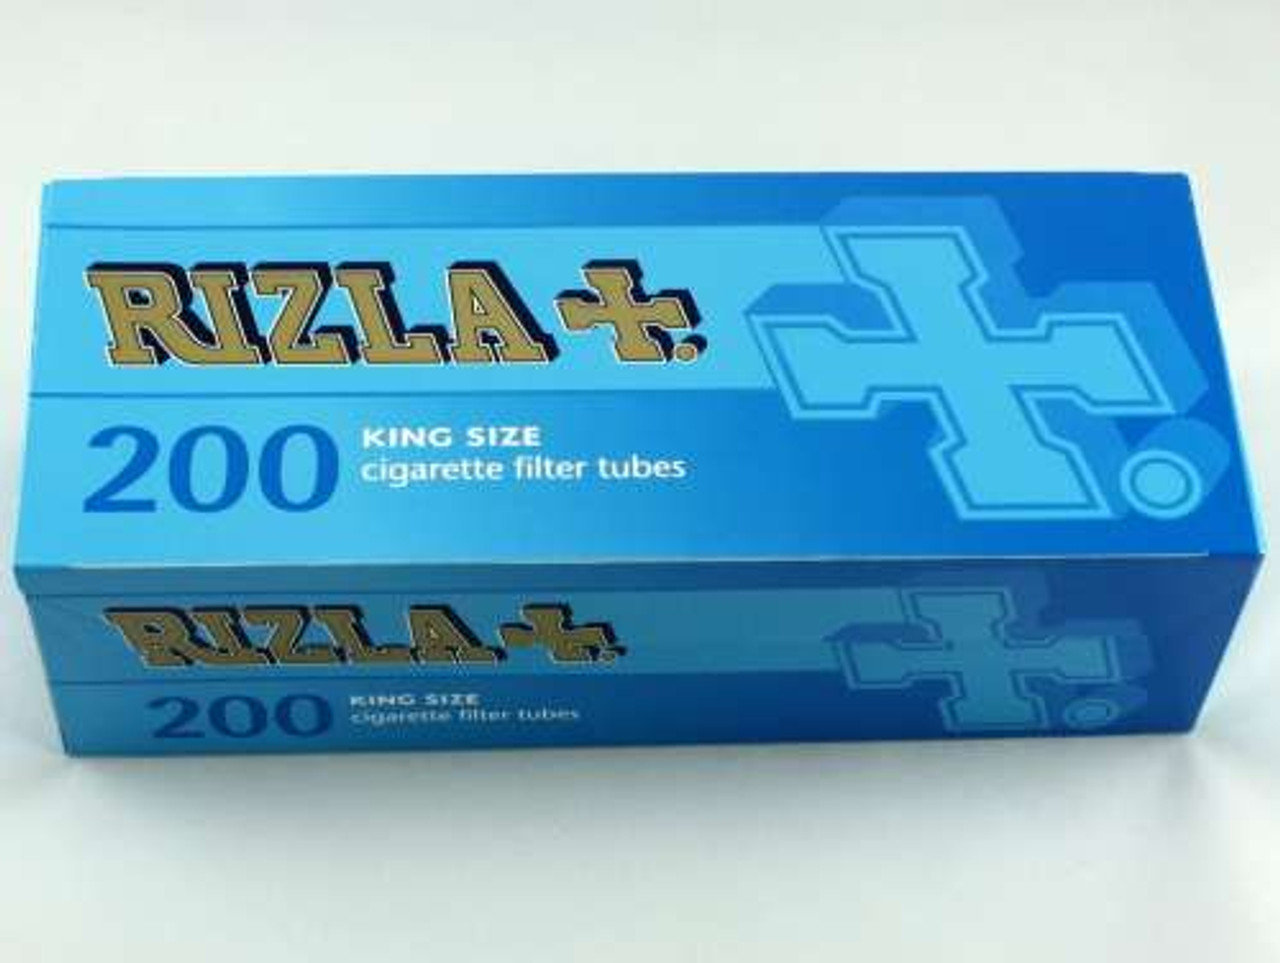 Rizla Light King Size Cigarette Tubes